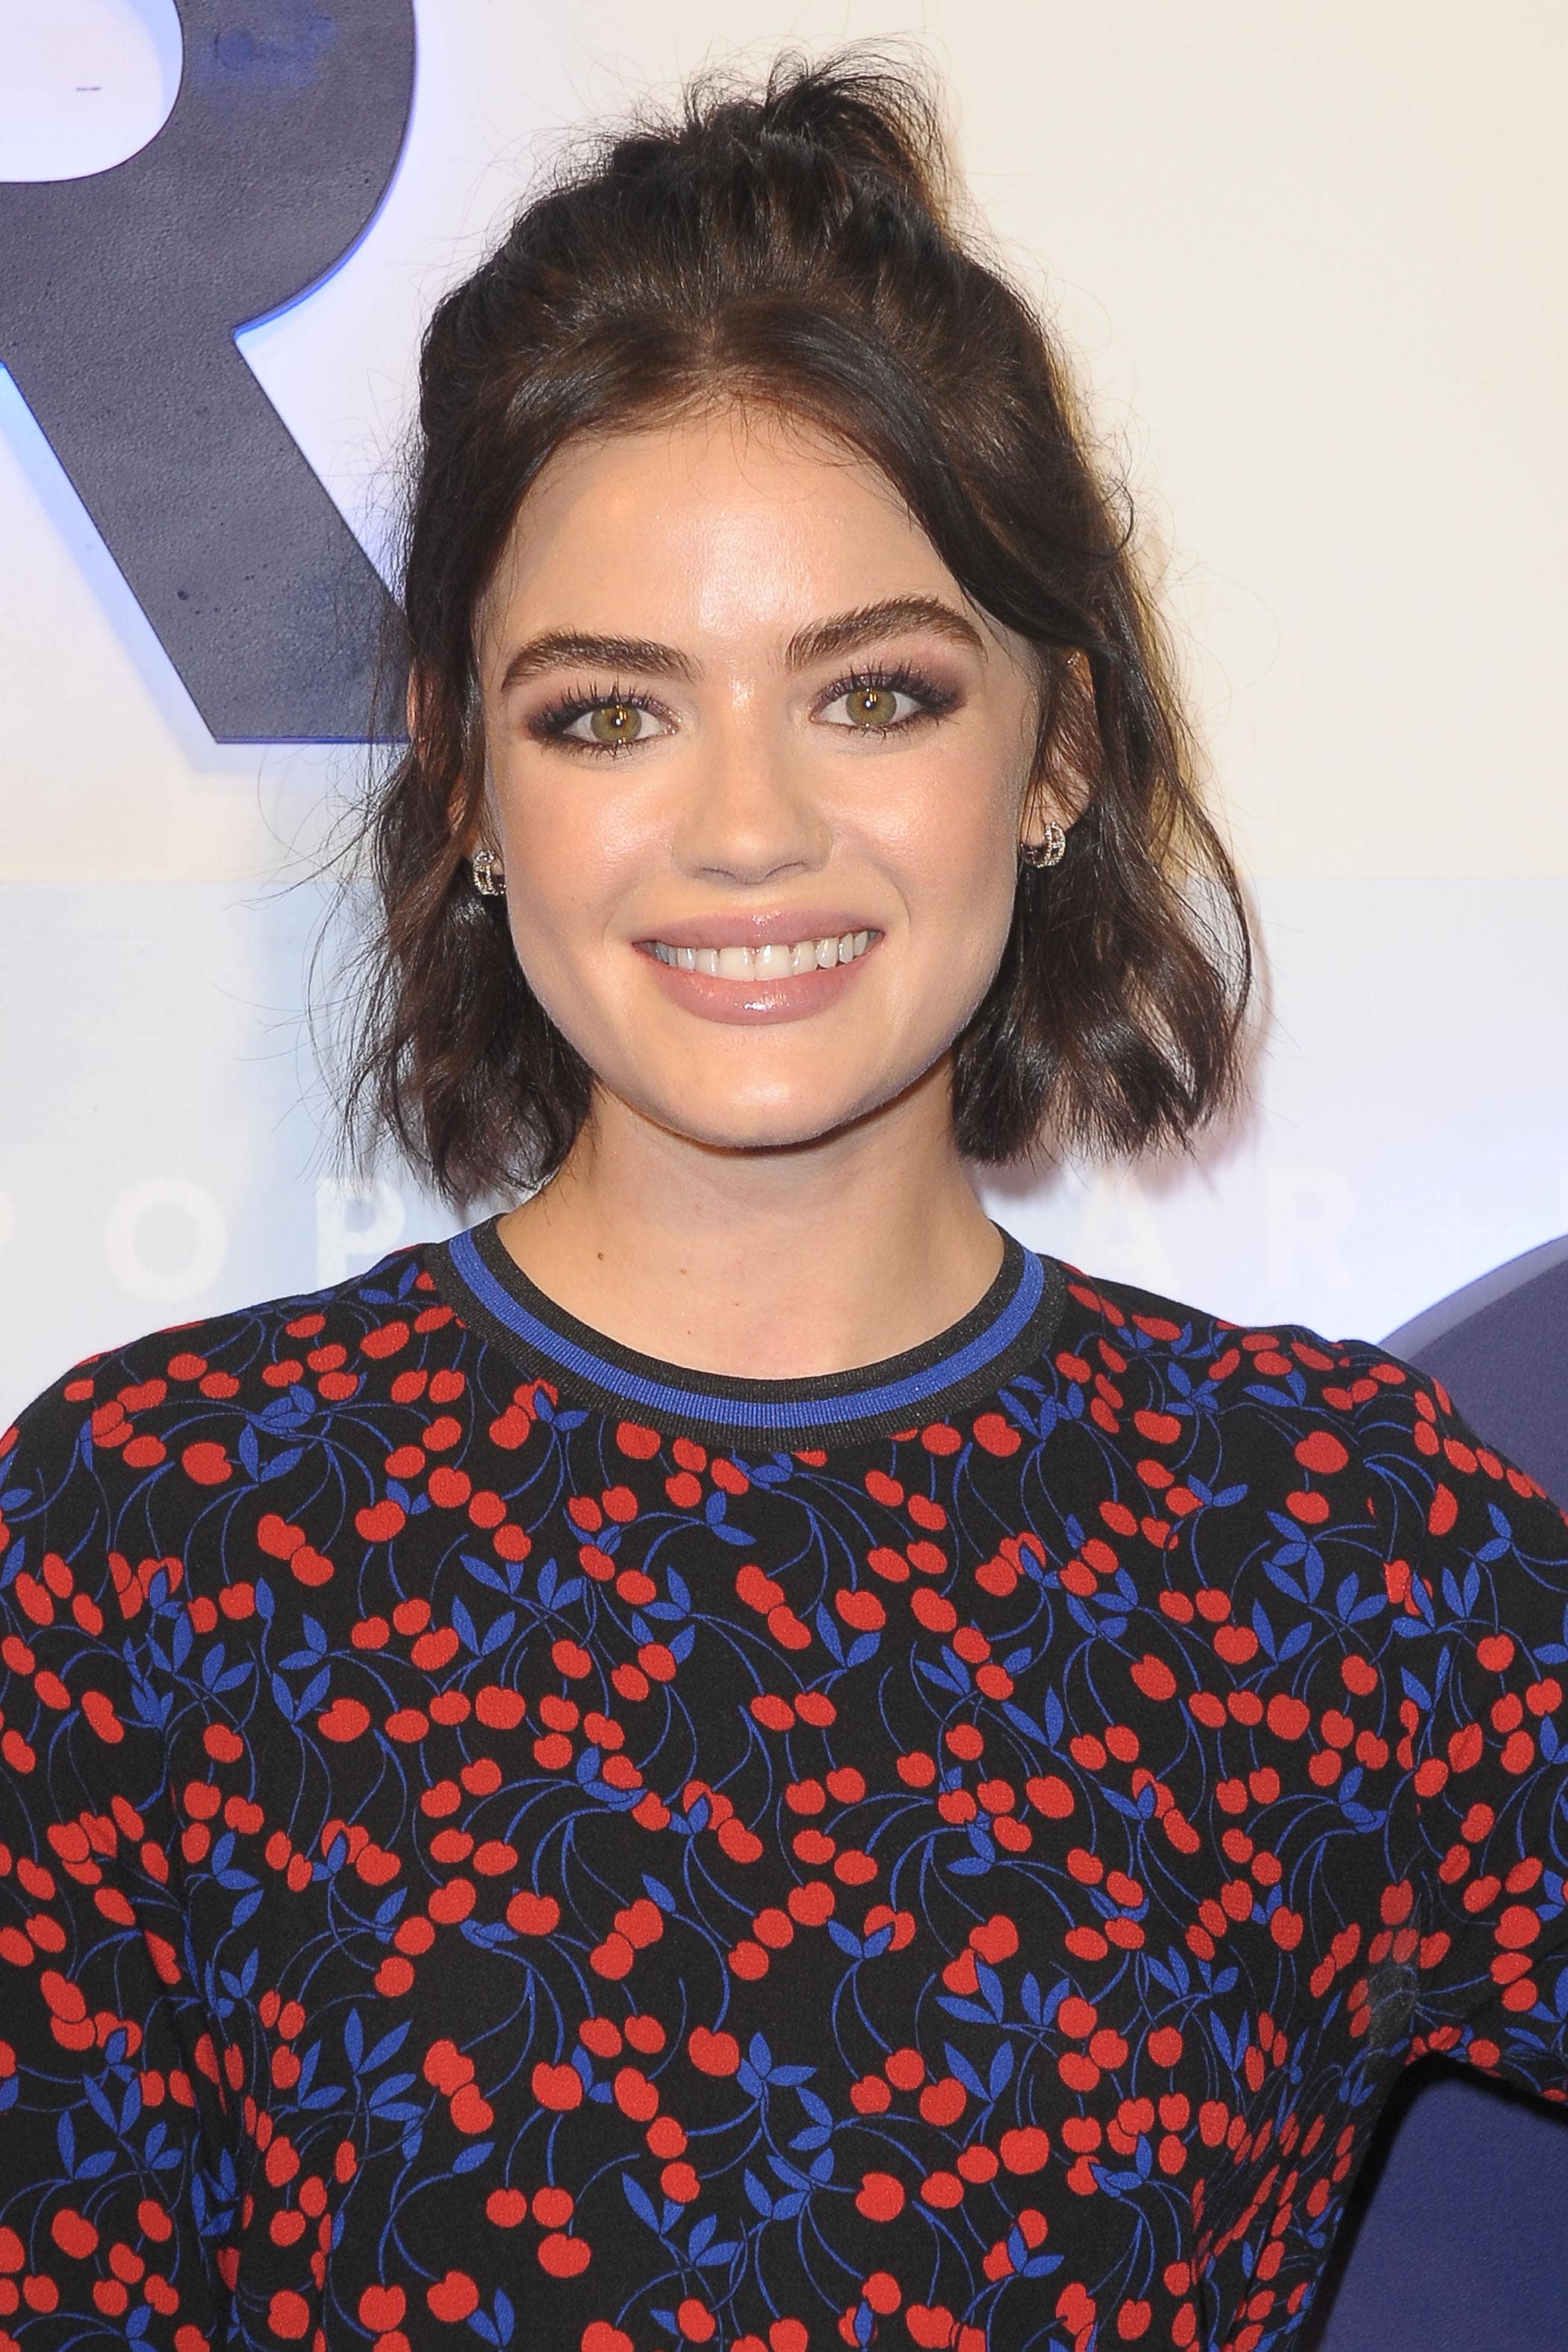 Lucy Hale with her dark brown hair styled into a tousled half-up, half-down bun hairstyle, wearing printed jumper on the red carpet